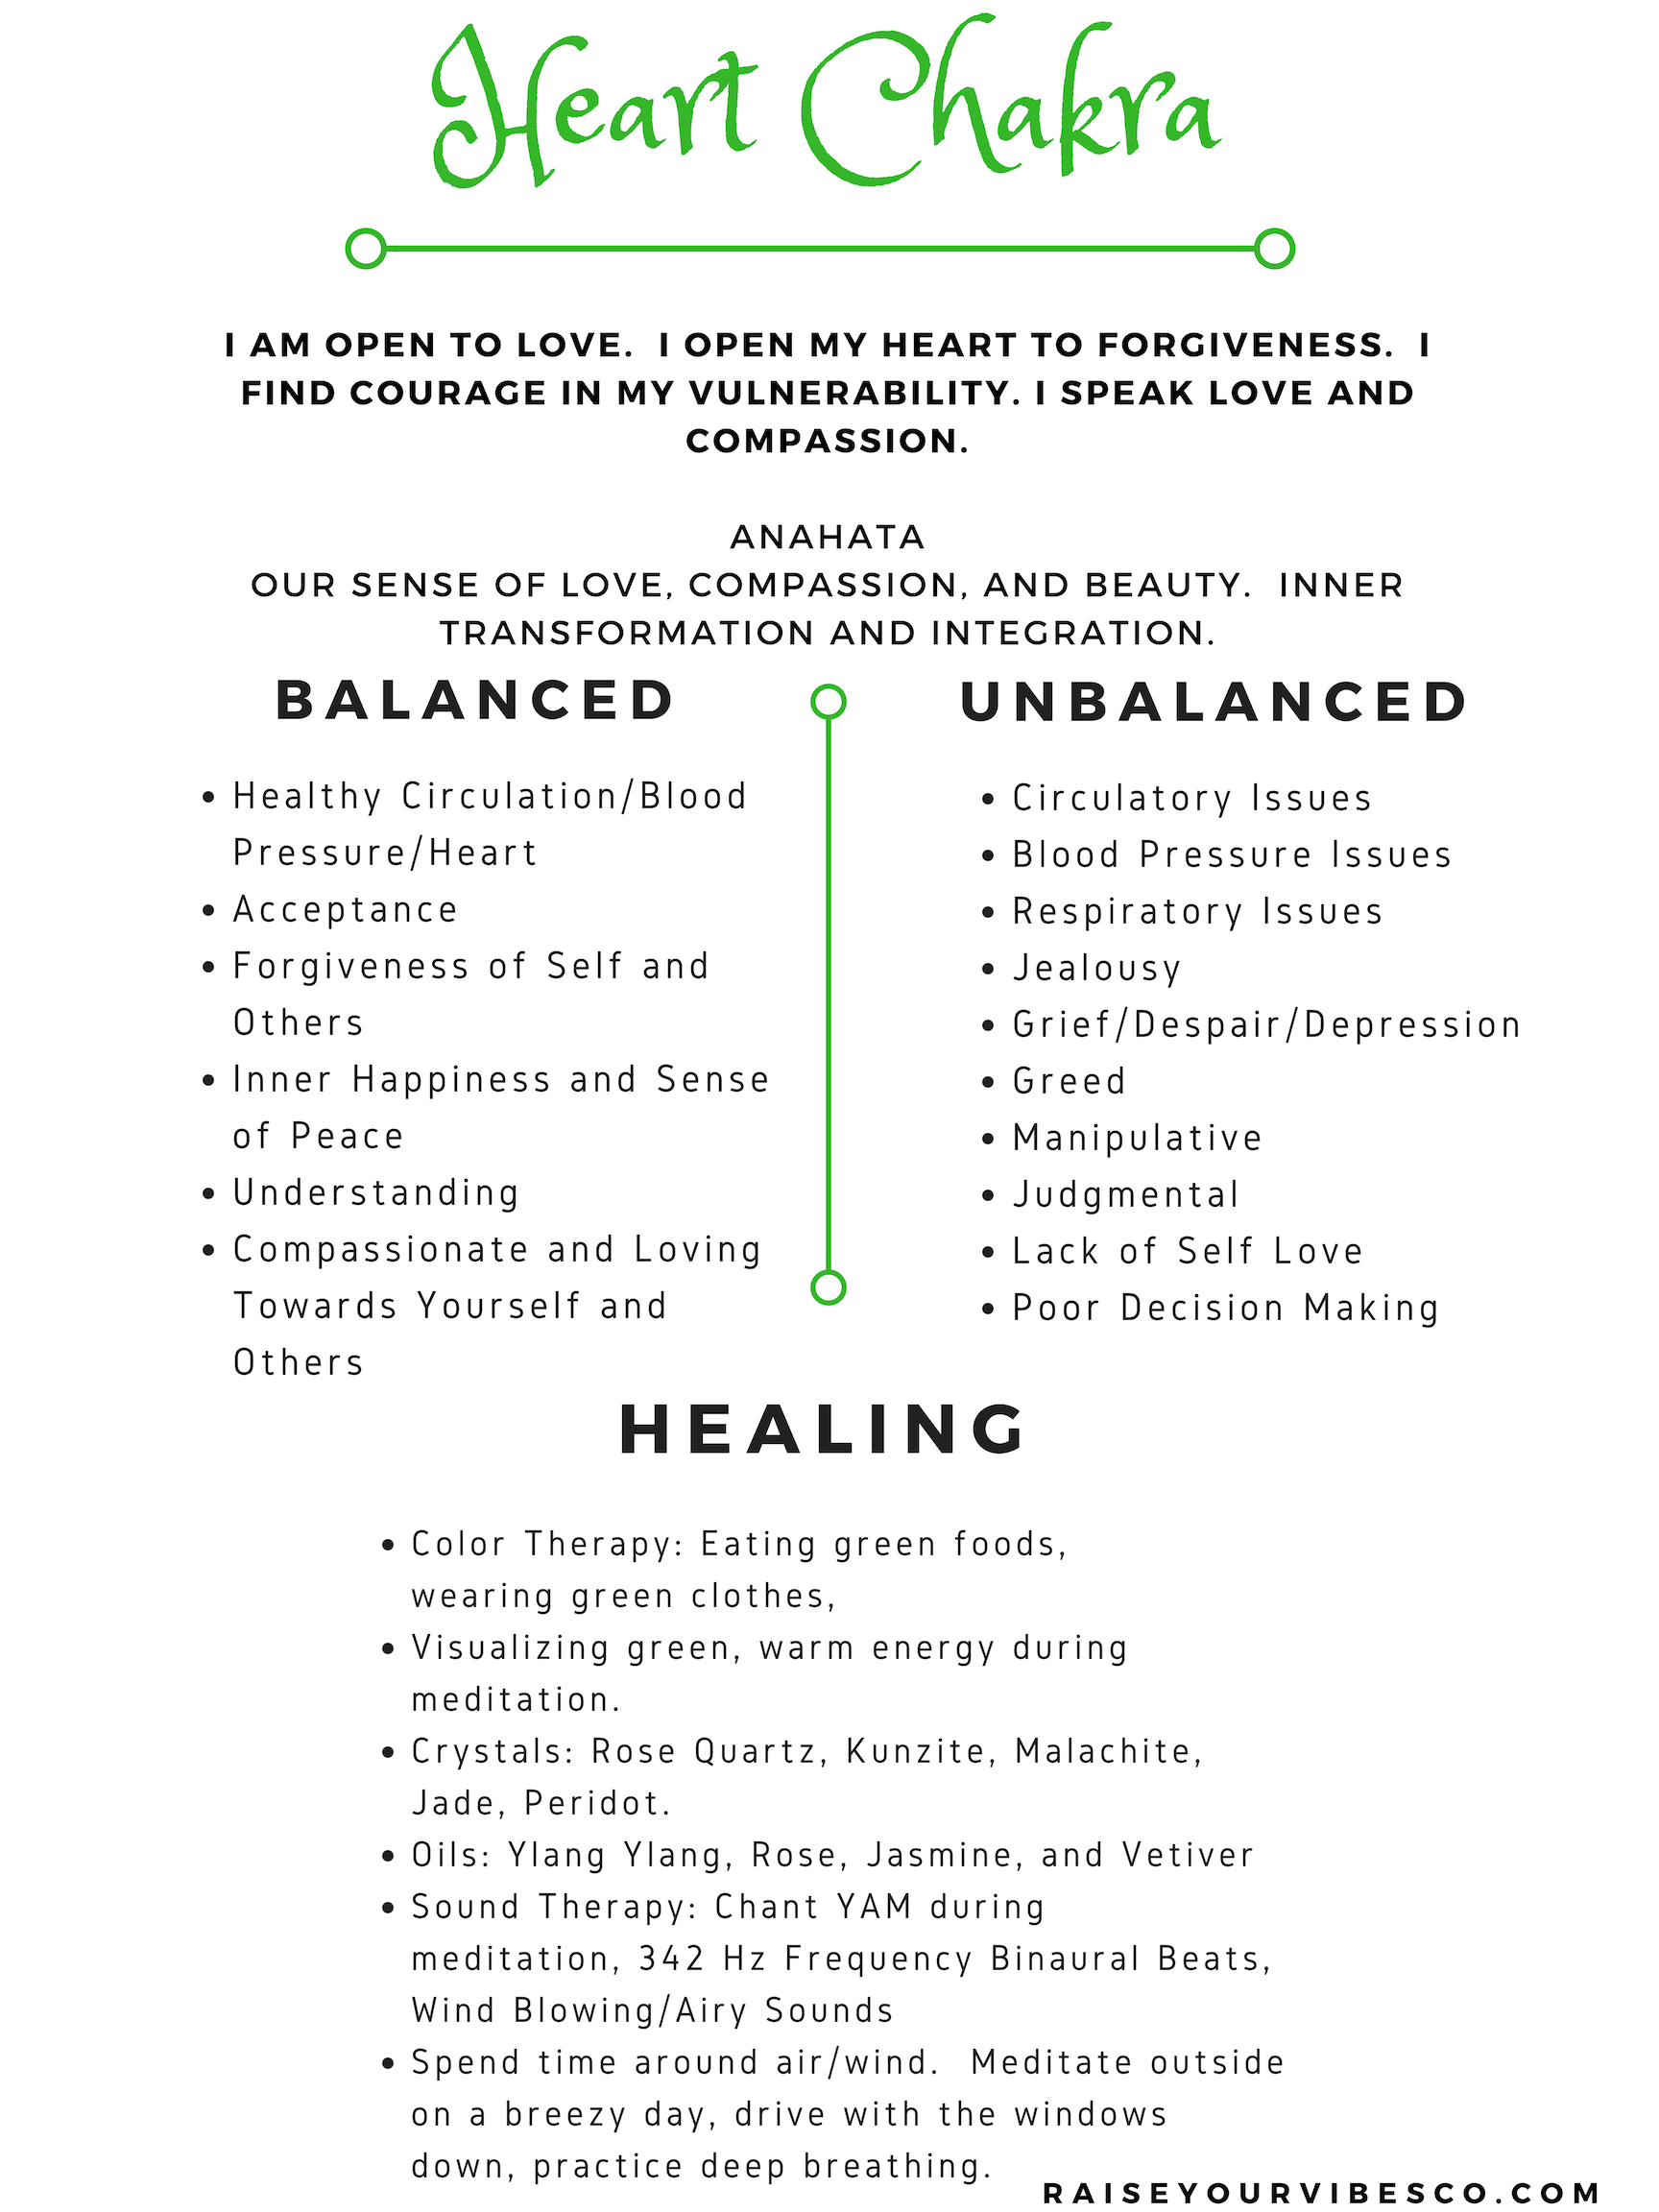 Heart Chakra Healing & Self Care